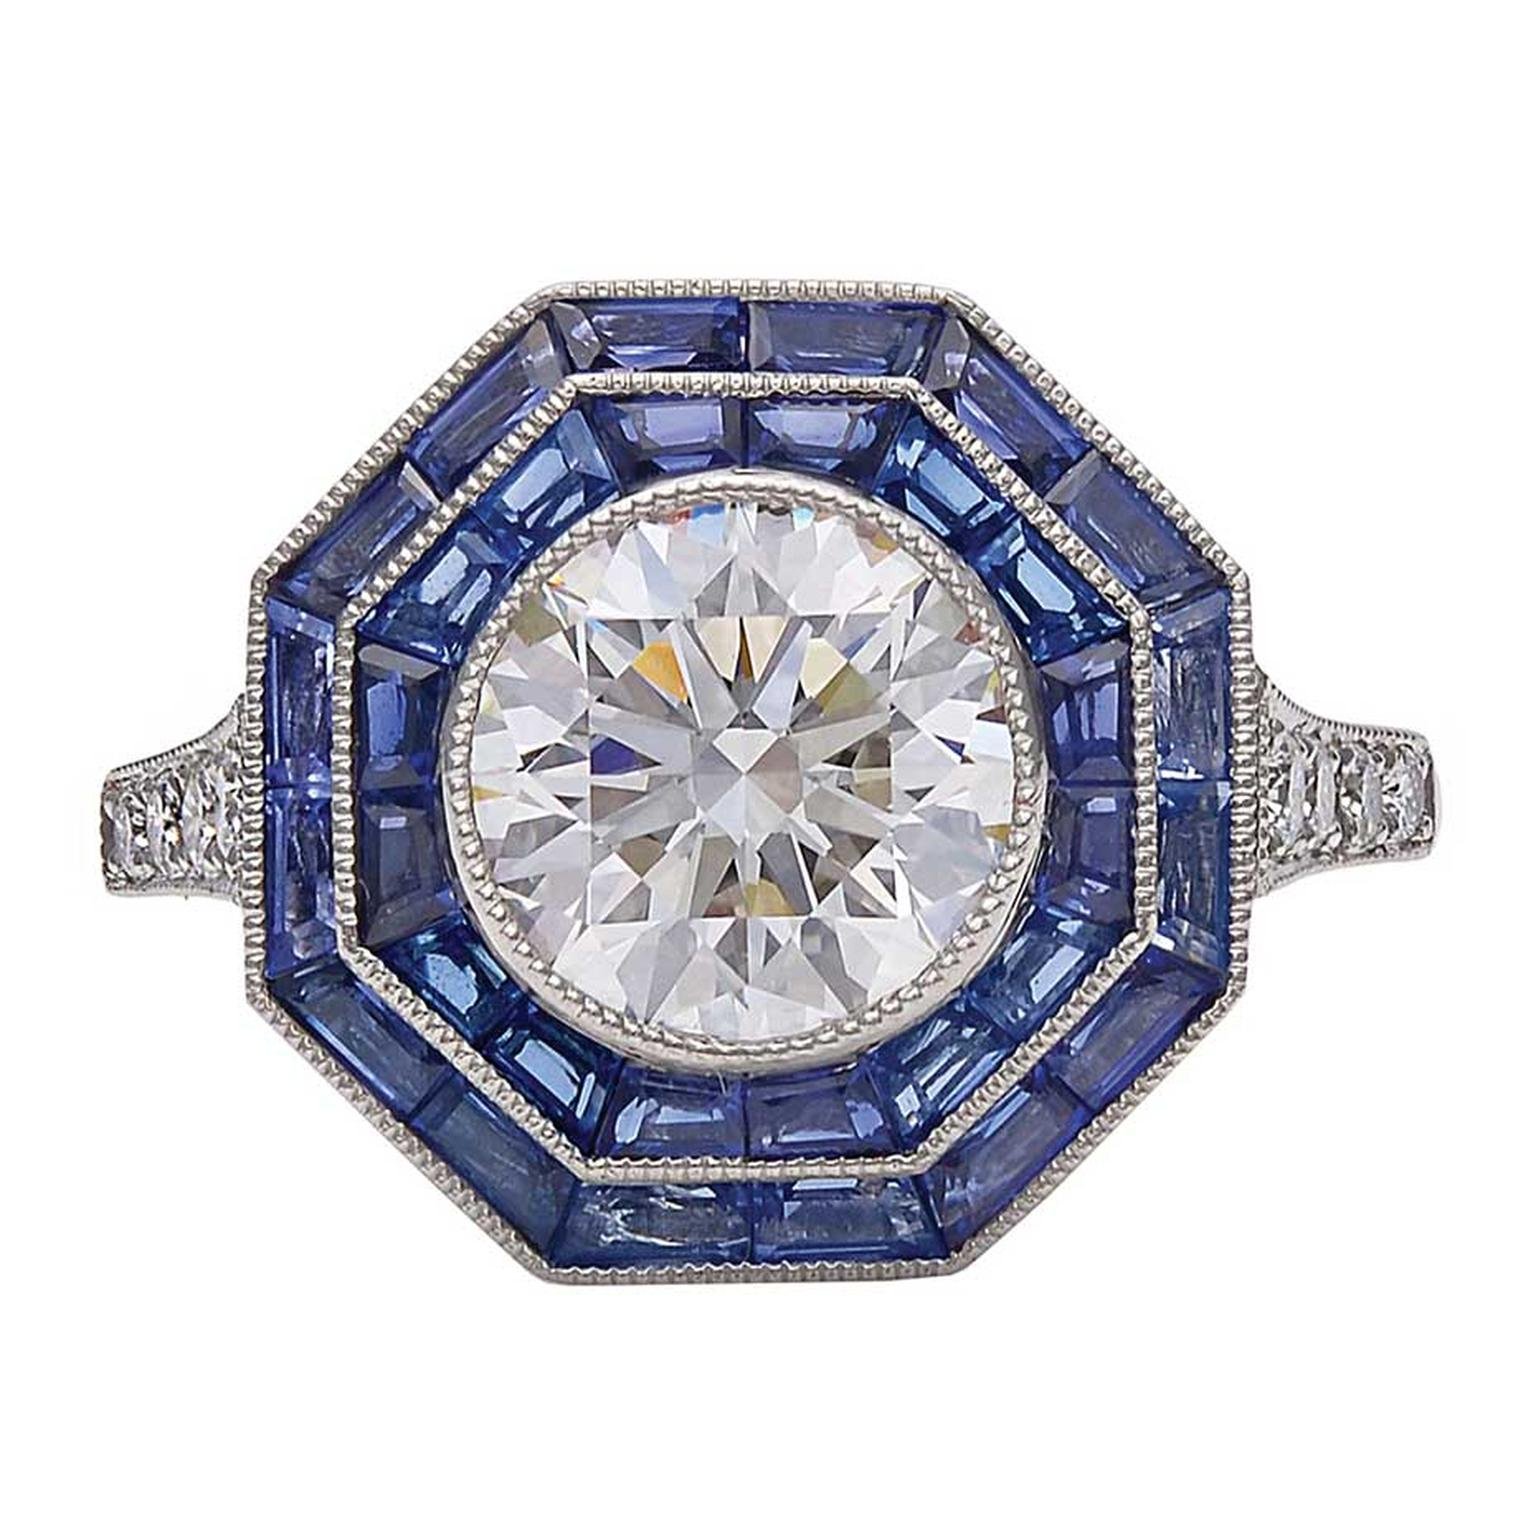 Vintage engagement ring by Tiffany & Co. with sapphires and diamonds in platinum, available on 1stdibs.com (£25,620).